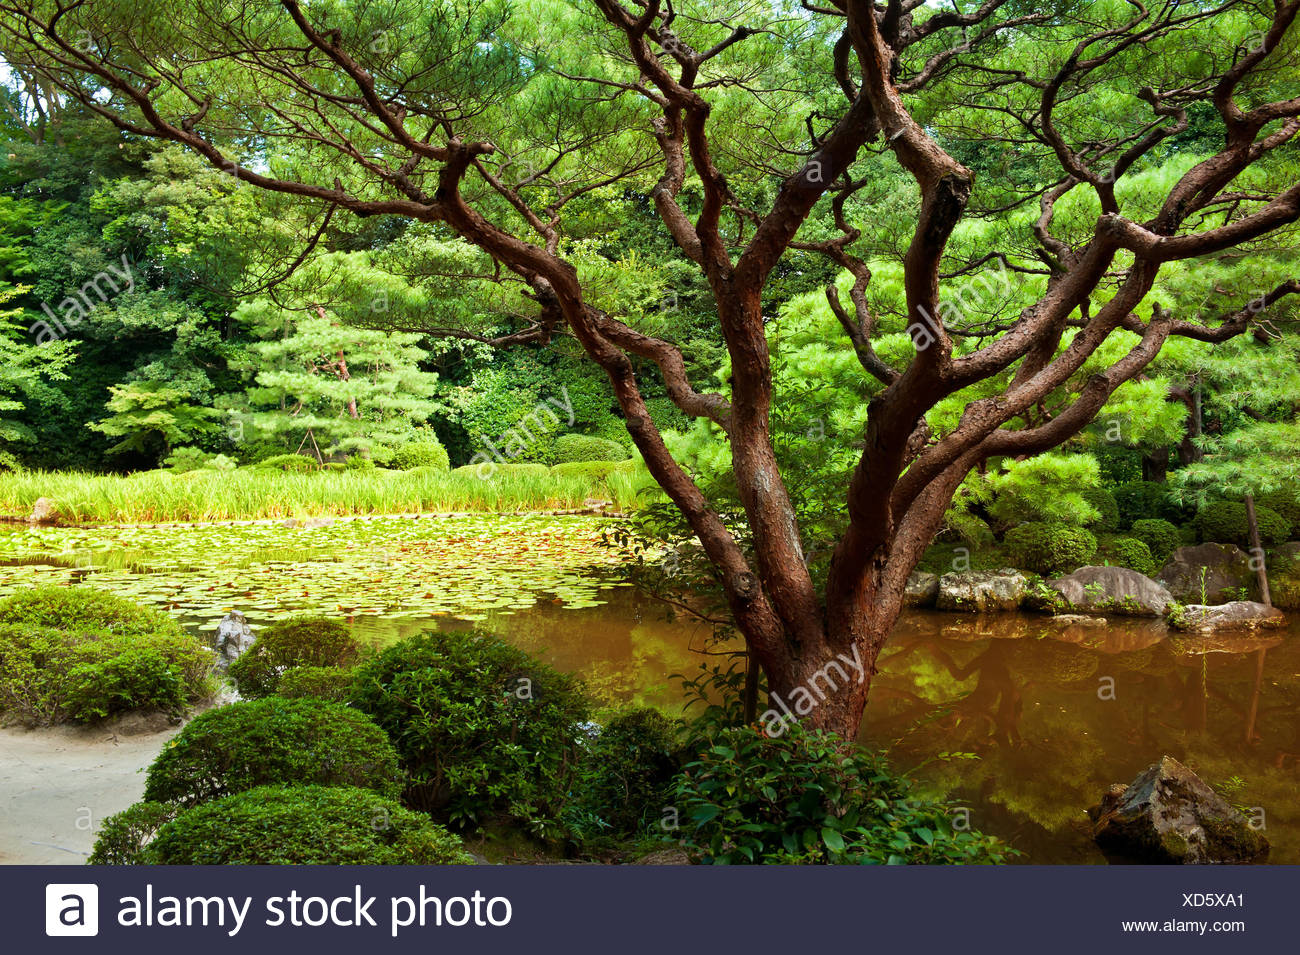 Park Garden Japanese Japan Landscape Scenery Countryside Nature Stock Photo Alamy